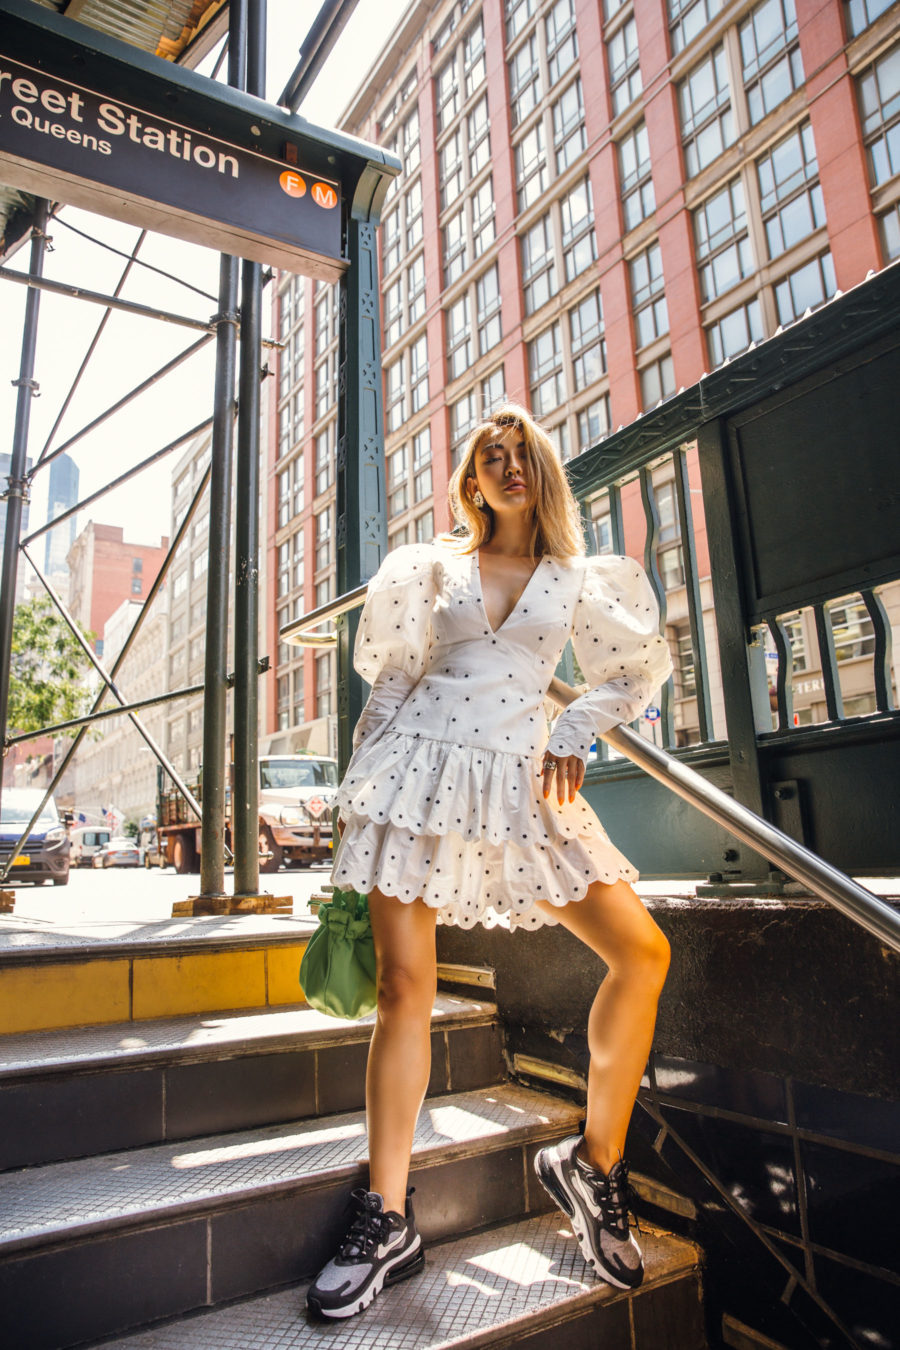 jessica wang wearing a polka dot mini dress with juliet sleeves and sneakers while sharing comfortable spring outfits // Jessica Wang - Notjessfashion.com